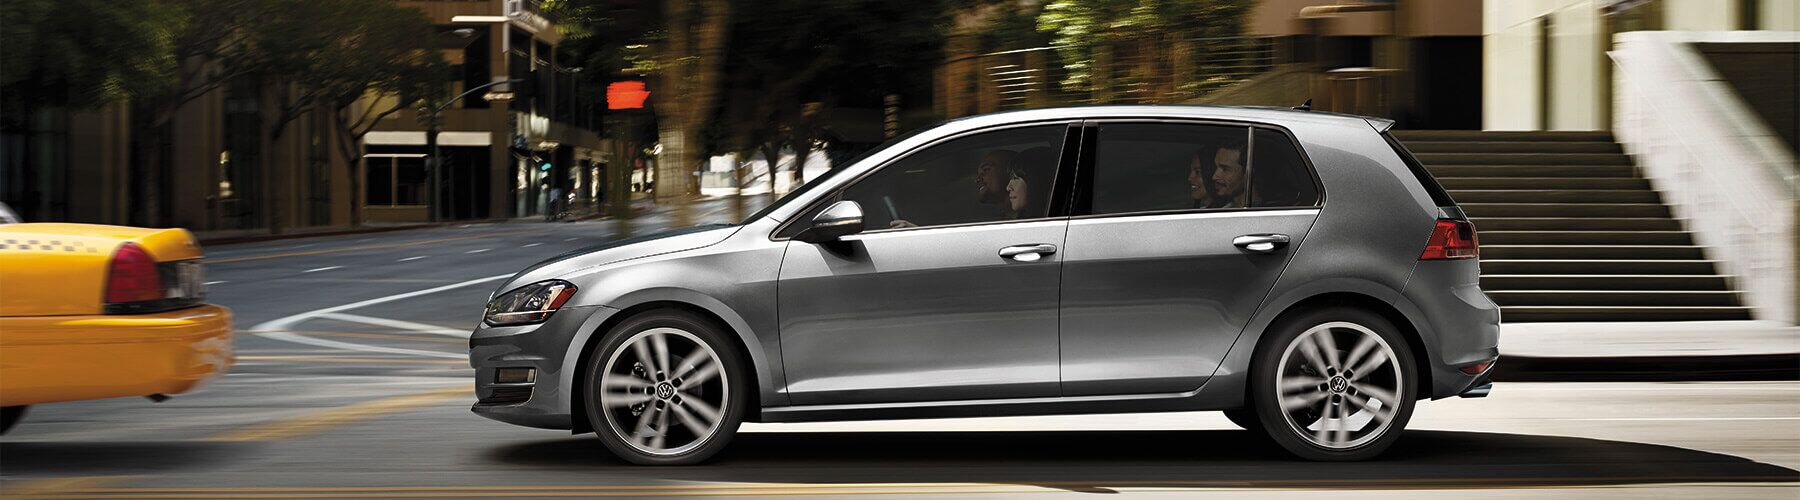 Great Certified Pre-Owned Volkswagen Models can be found at Pacific Volkswagen, such as this 2015 VW Golf